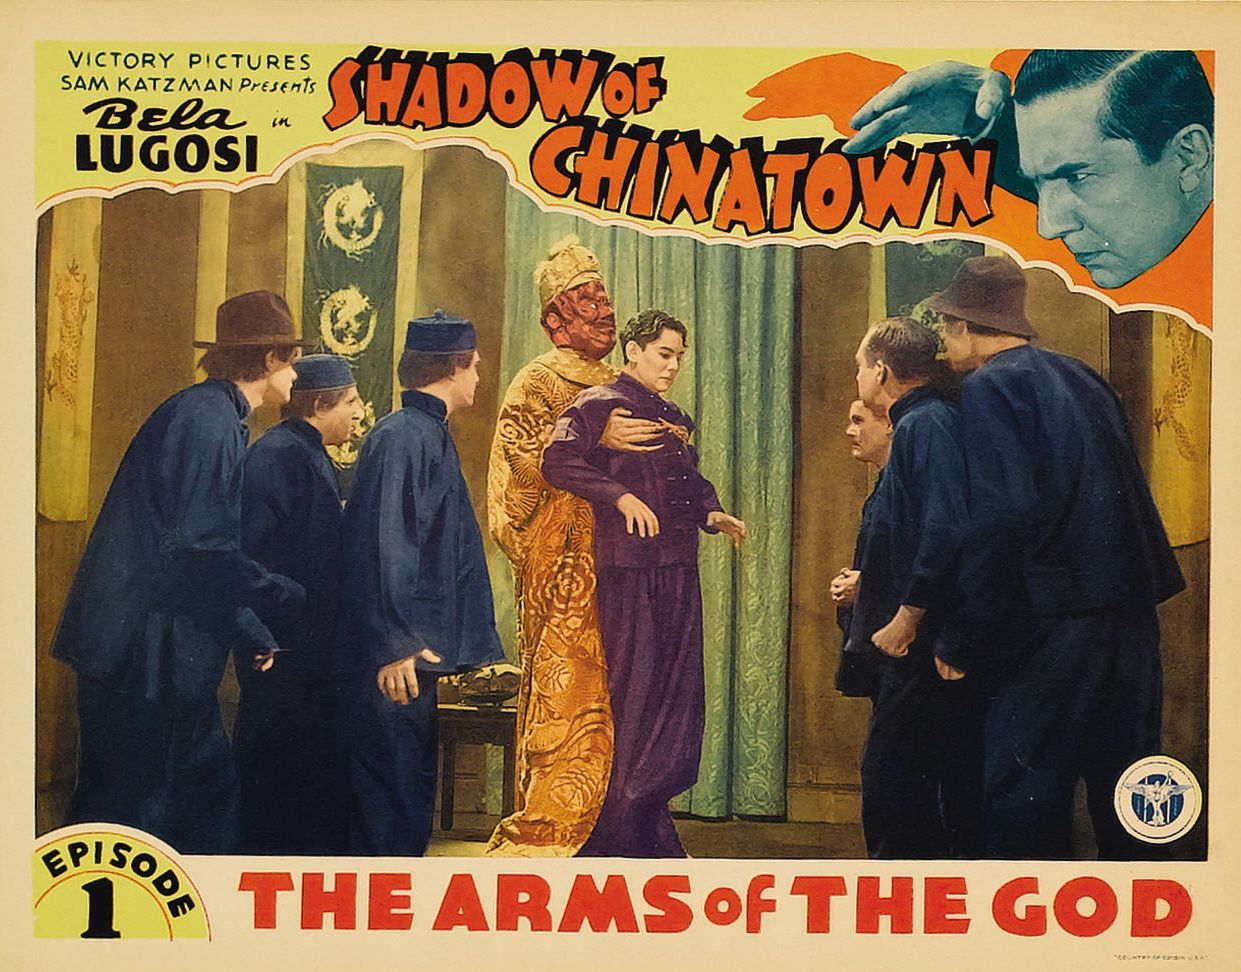 Bela Lugosi, George Chan, Paul Fung, Maurice Liu, and Henry T. Tung in Shadow of Chinatown (1936)